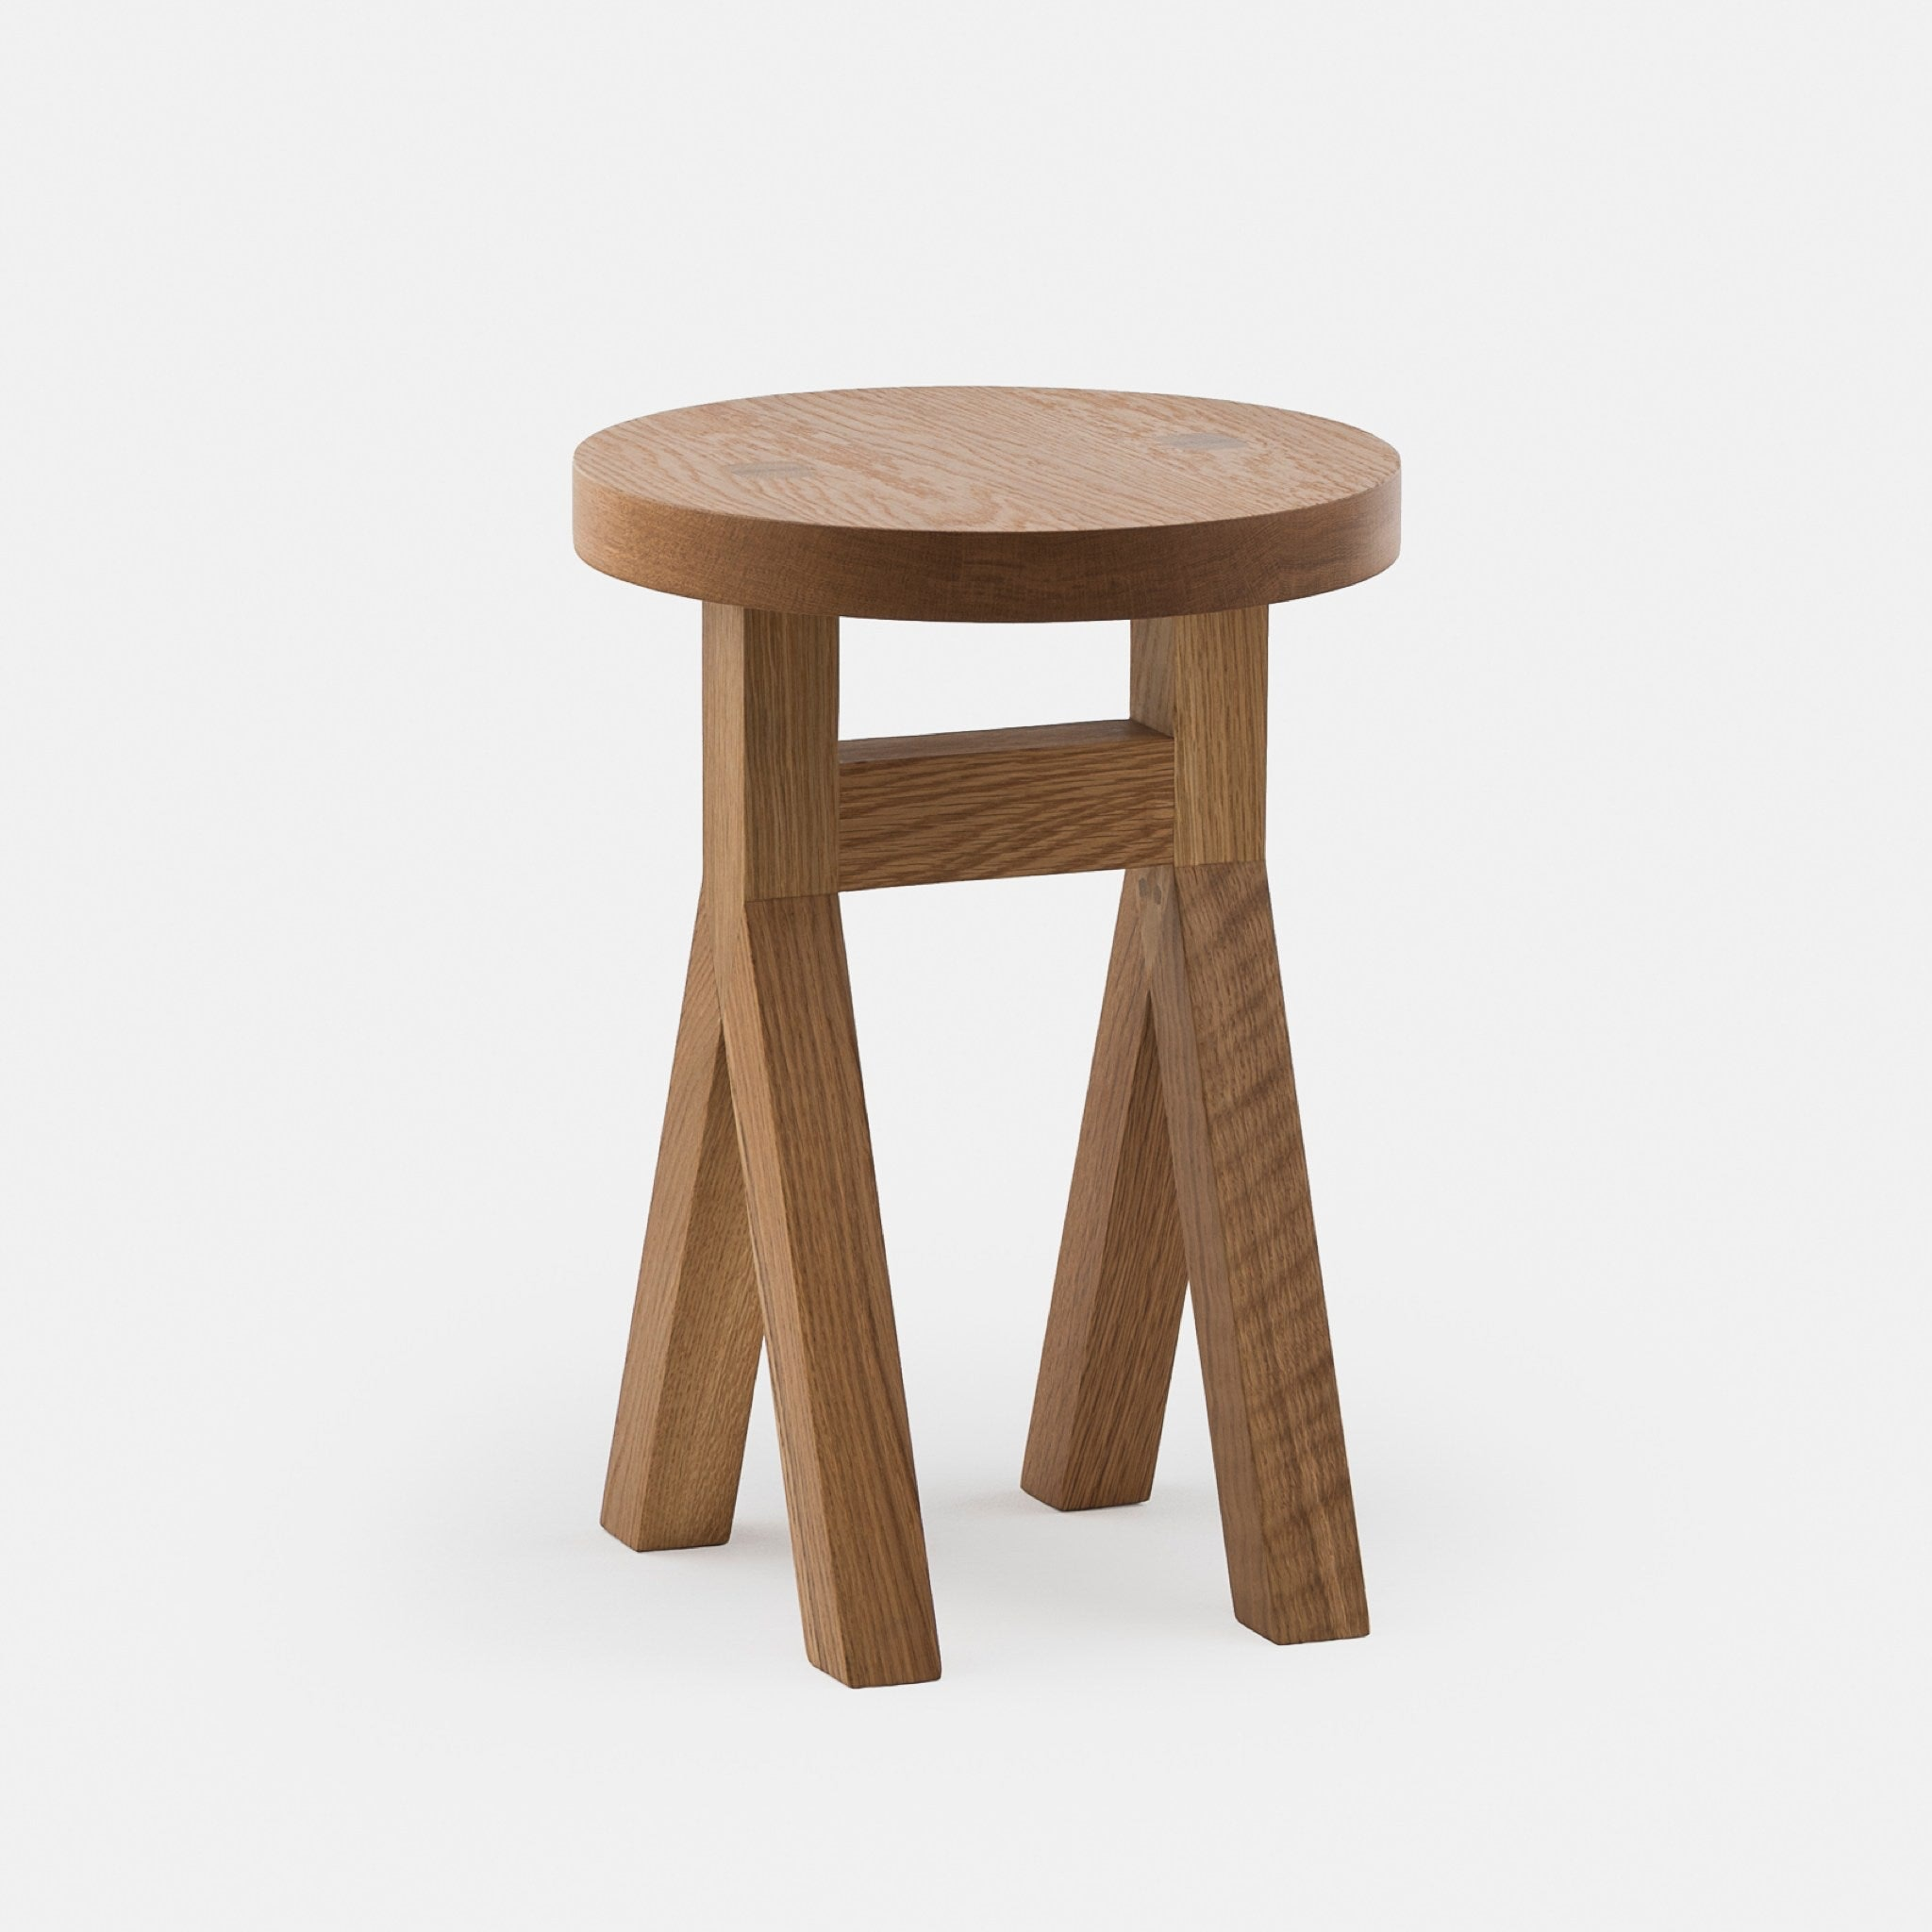 Commune Stool by Neri & Hu